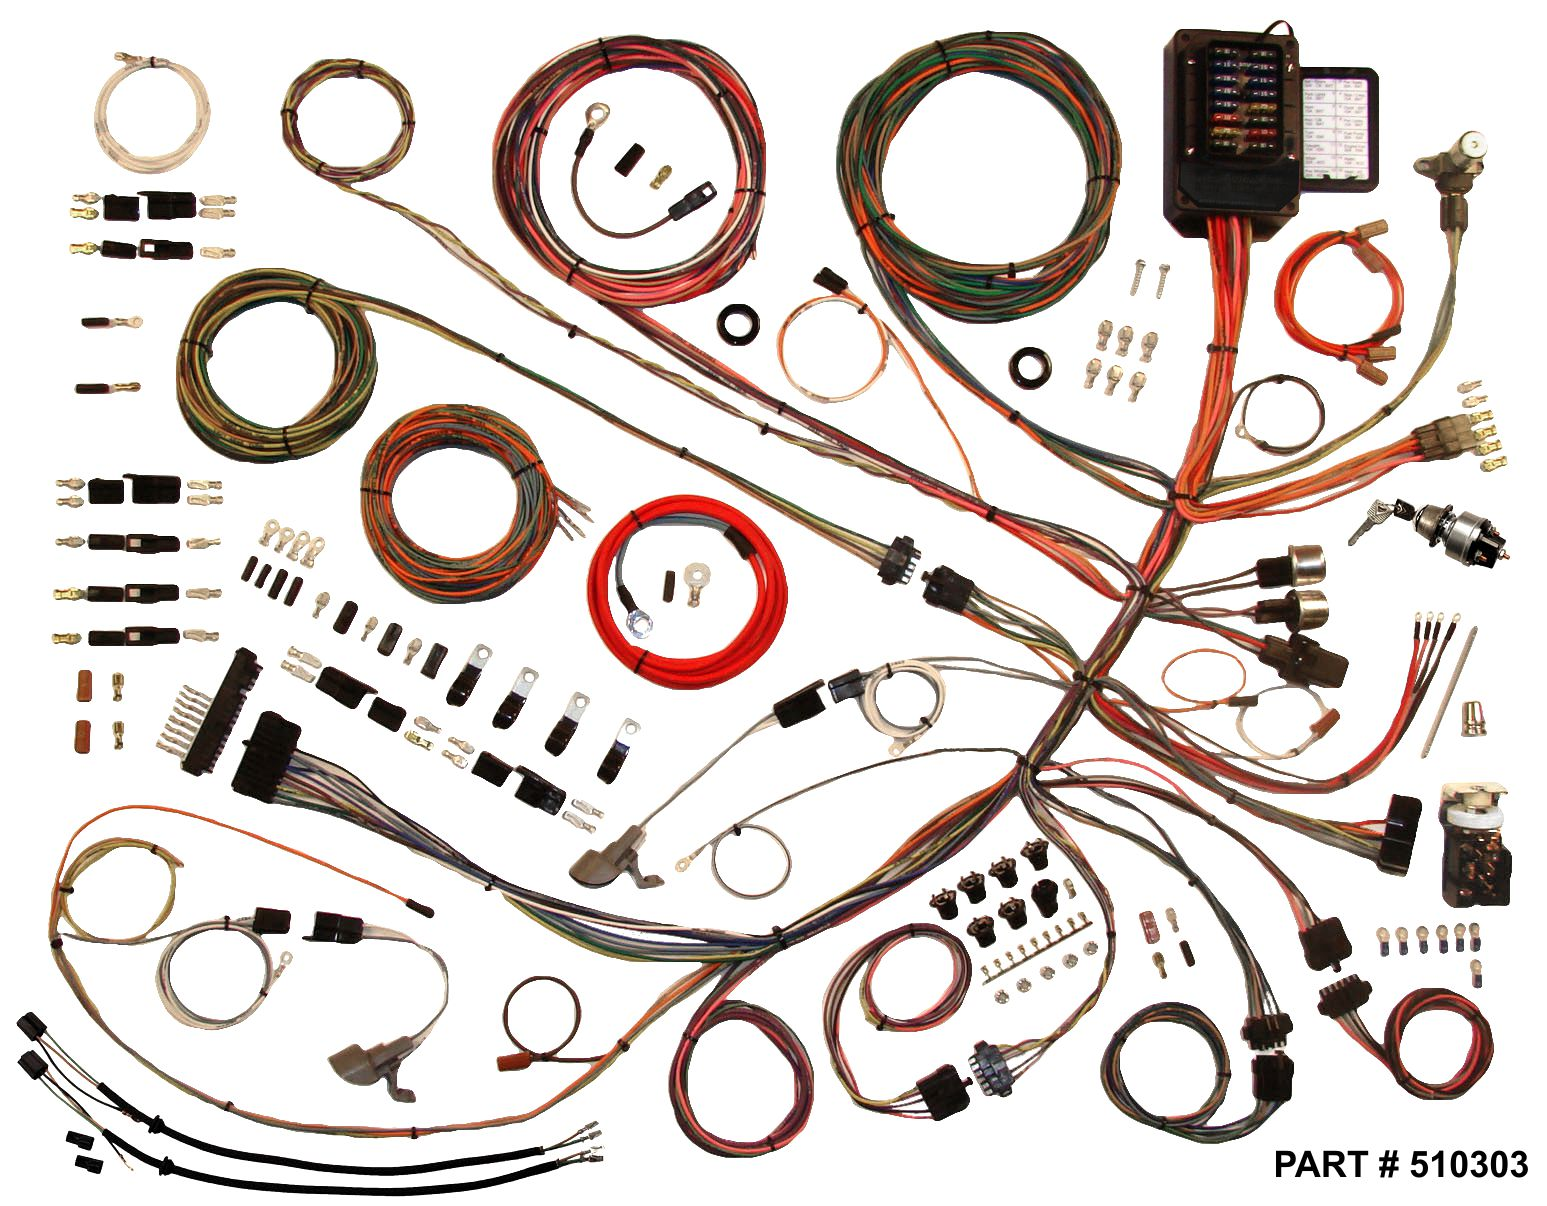 hight resolution of 1953 1956 ford f100 trucks restomod wiring system 1956 ford truck wiring harness 1953 56 ford